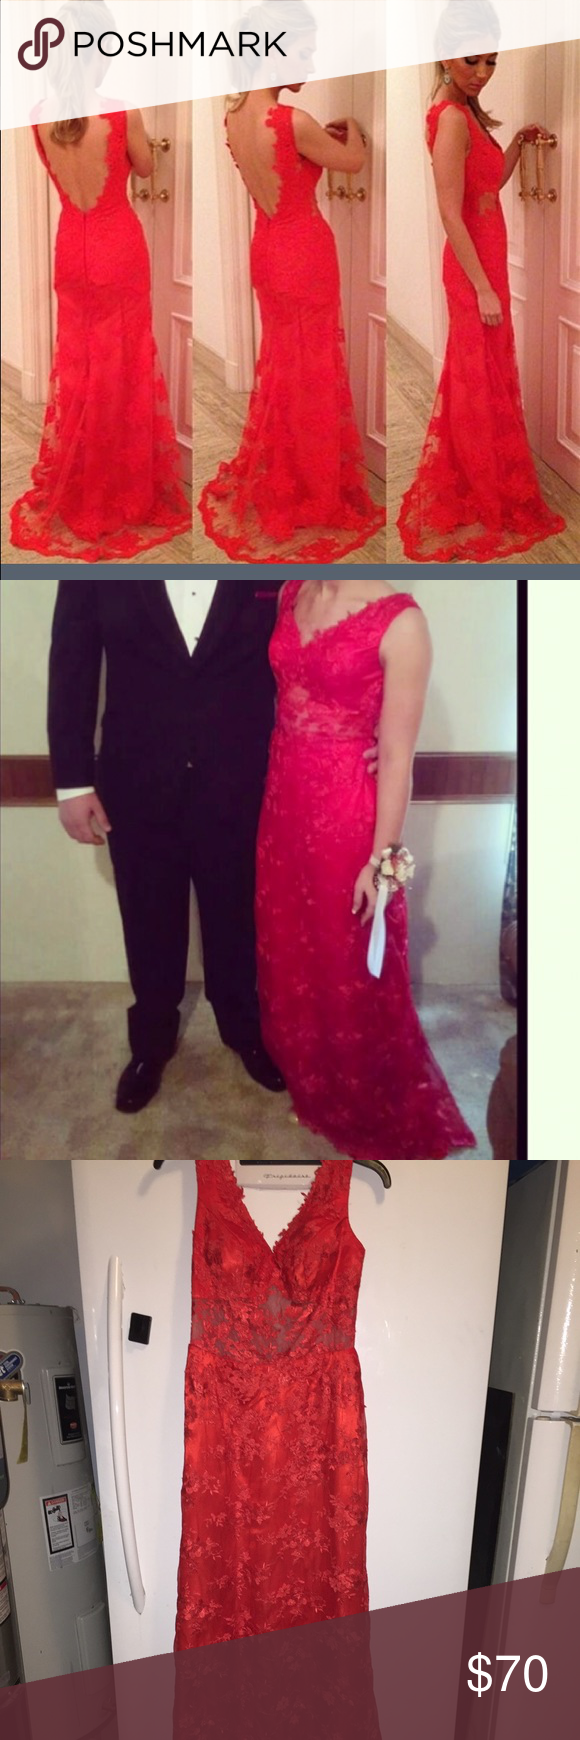 Prom dress beautiful red lace prom dress size dress was only